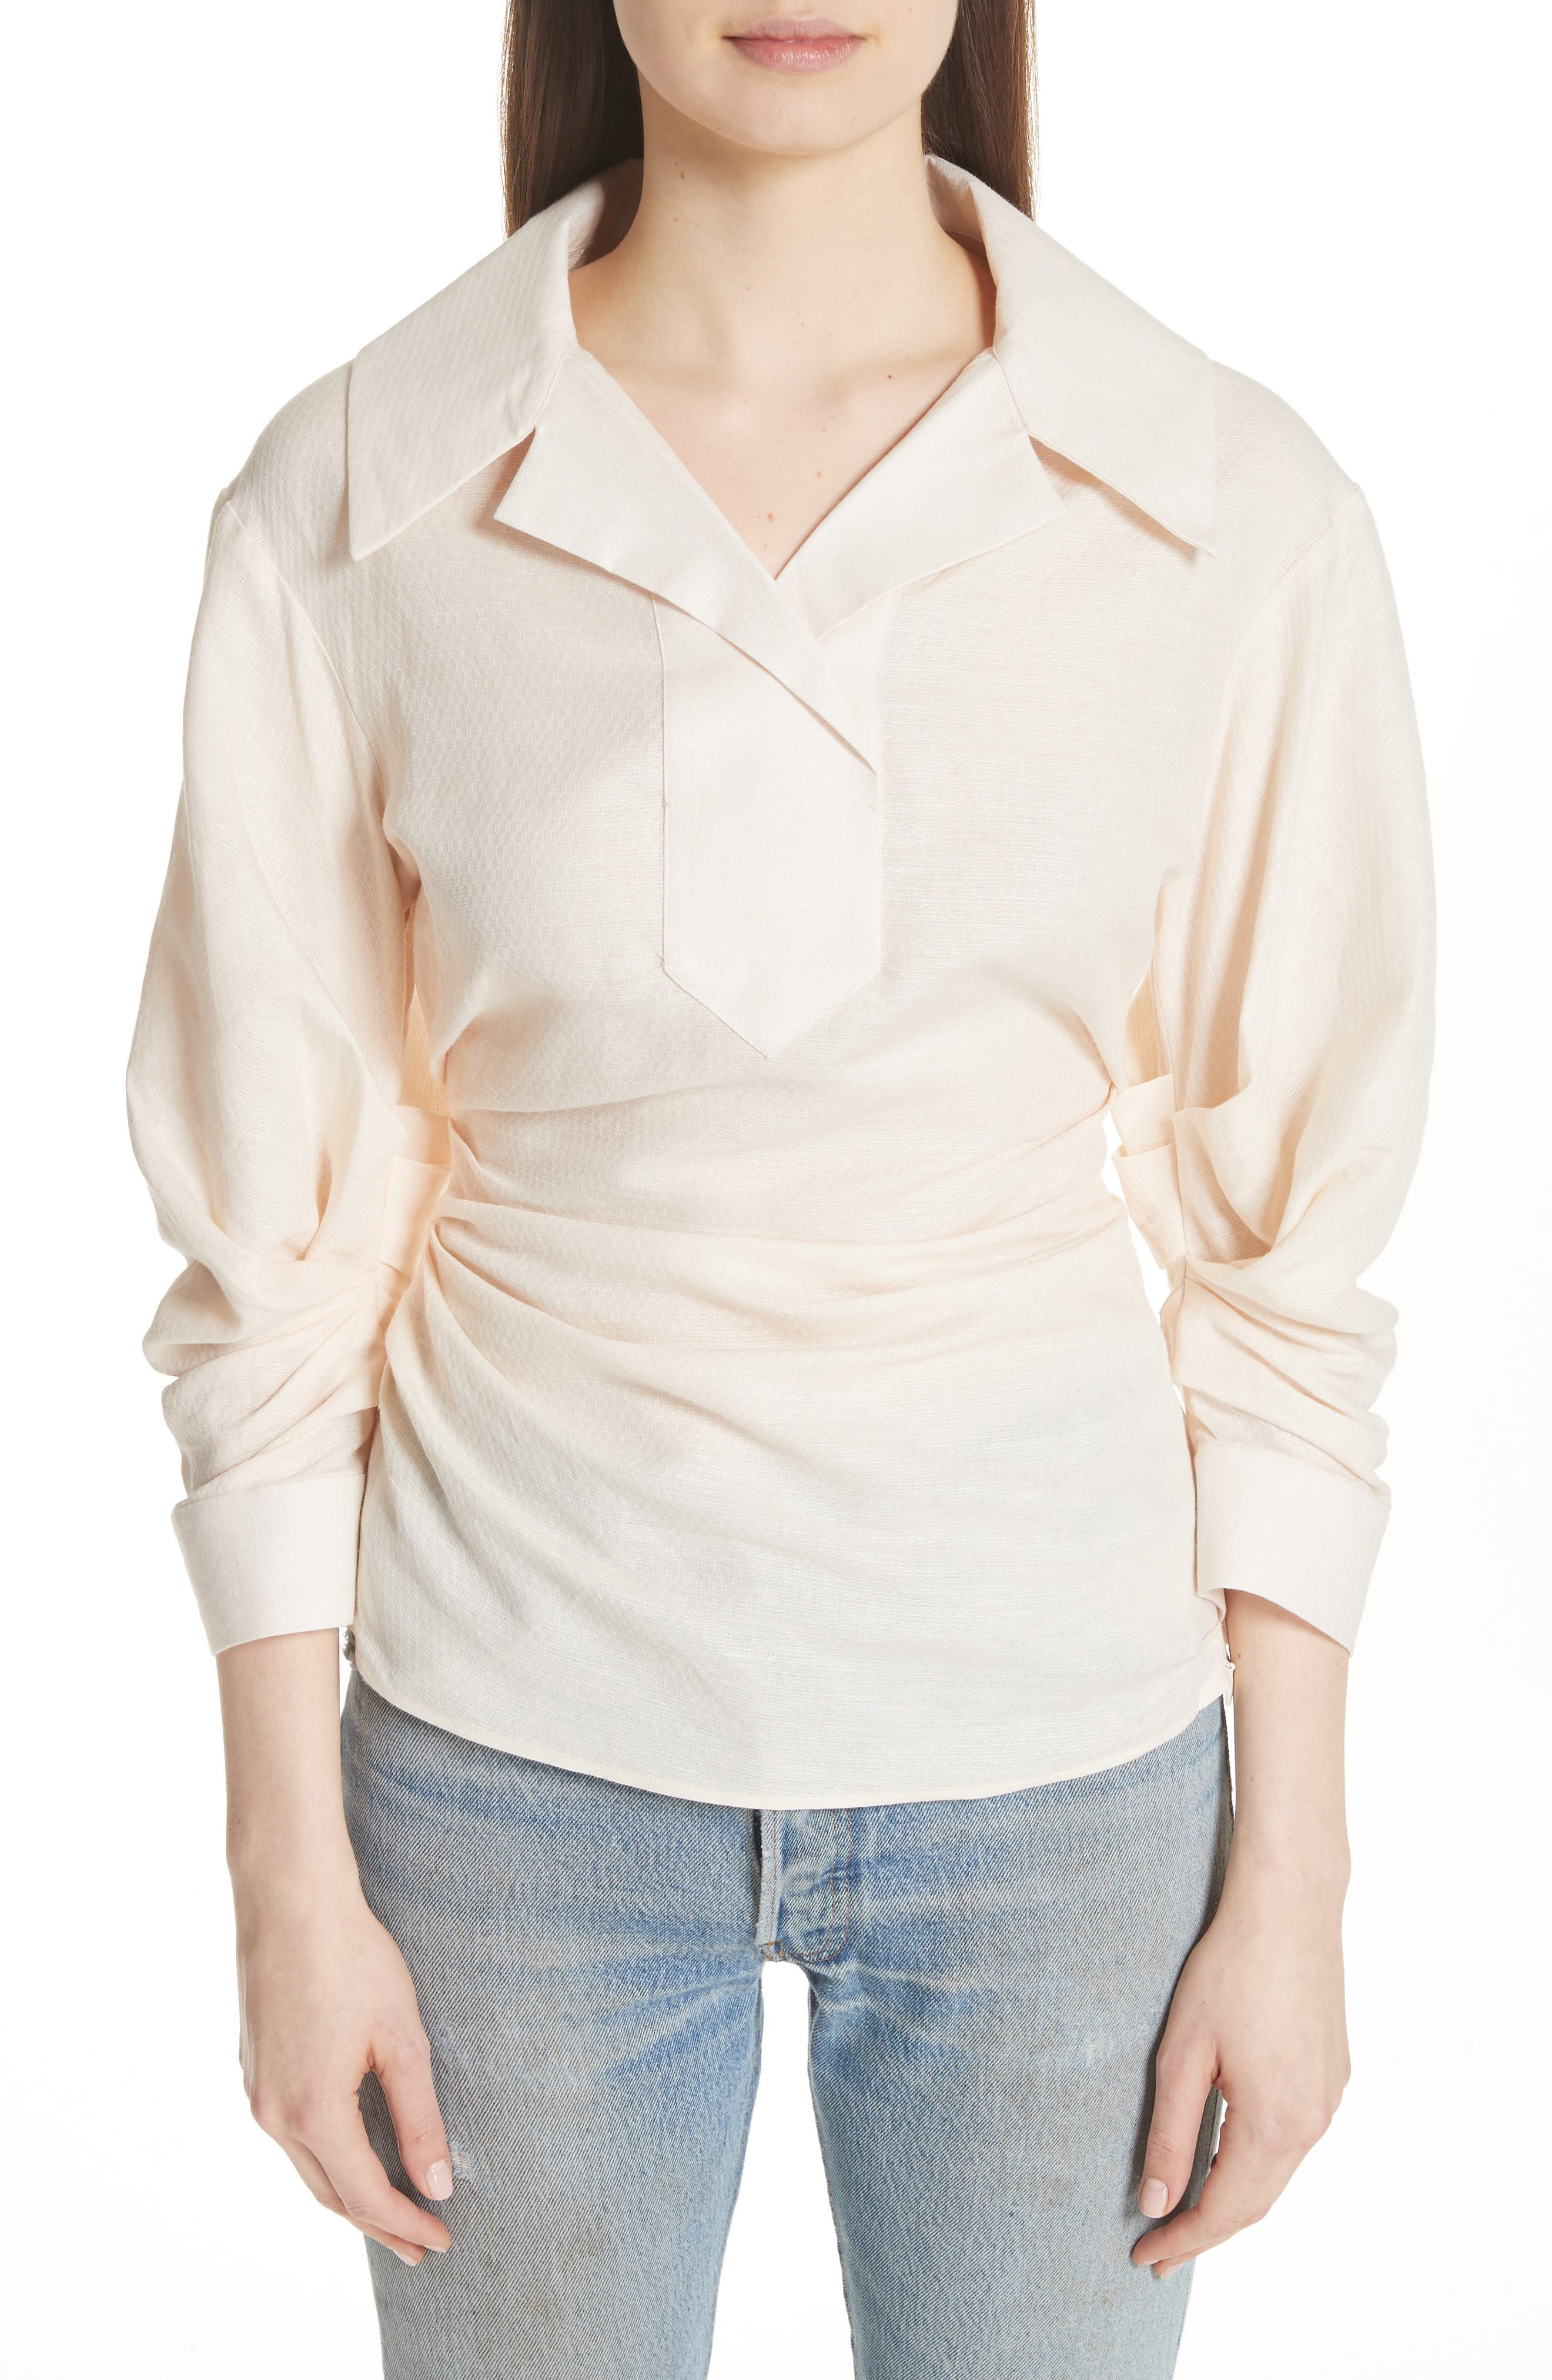 La Chemise Maceio Shirt,                             Main thumbnail 1, color,                             Beige